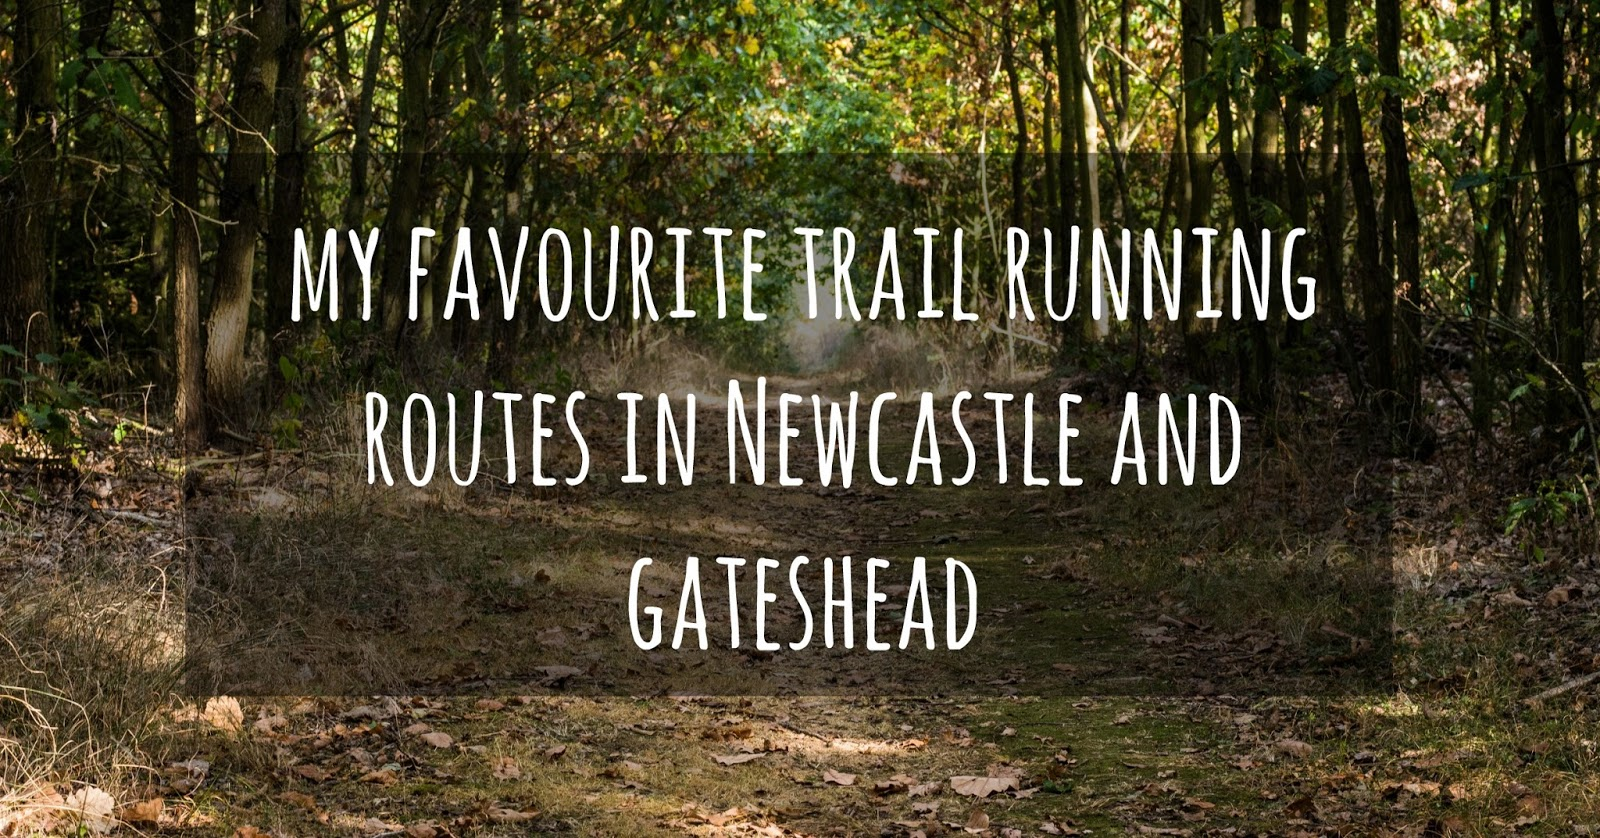 My Favourite Trail Running Routes in Newcastle and Gateshead